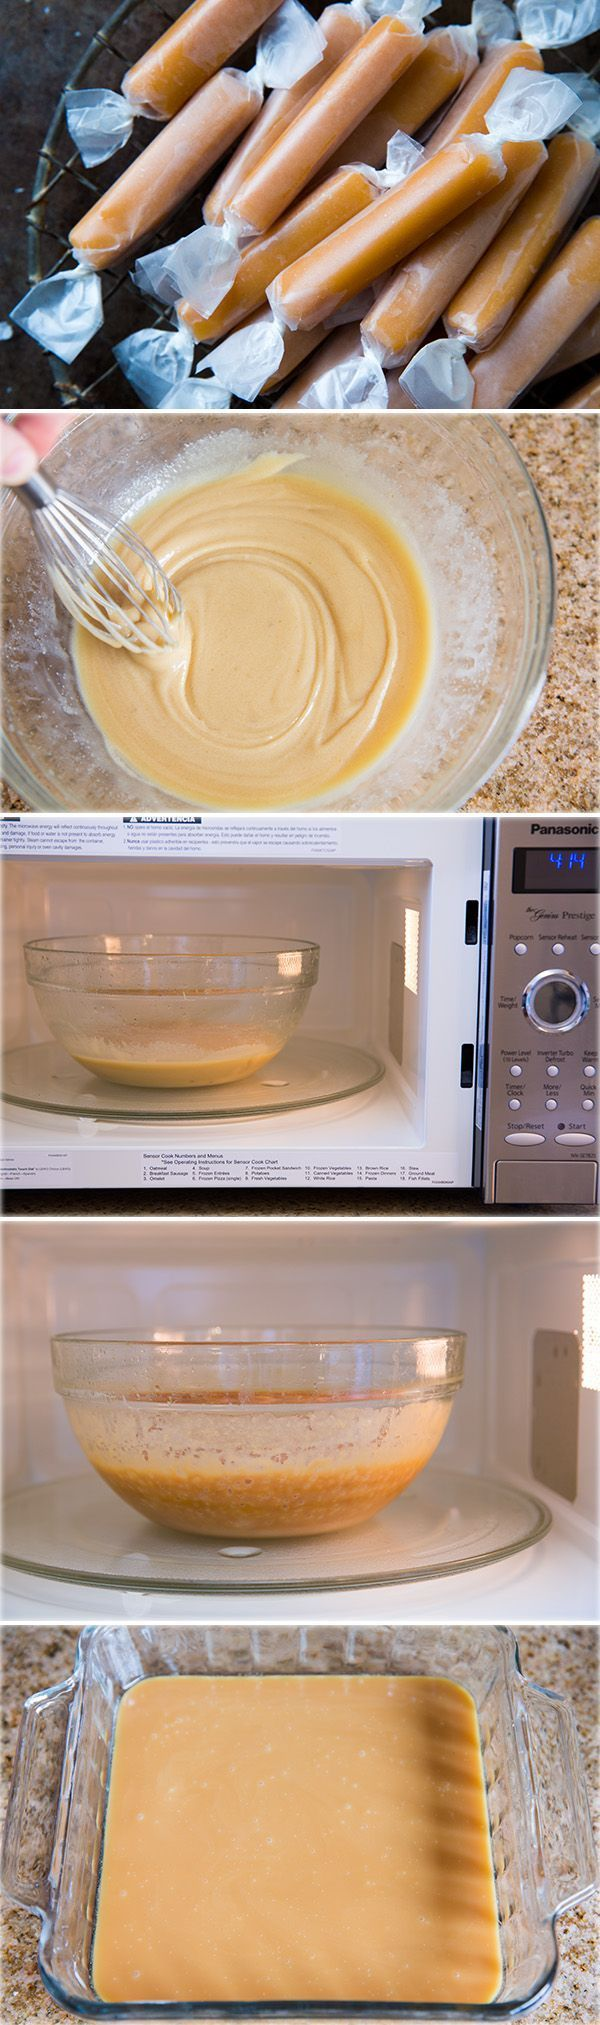 Microwave Caramels - These caramels are amazing and they are made in 7 minutes in the microwave! Doesn't get much easier!